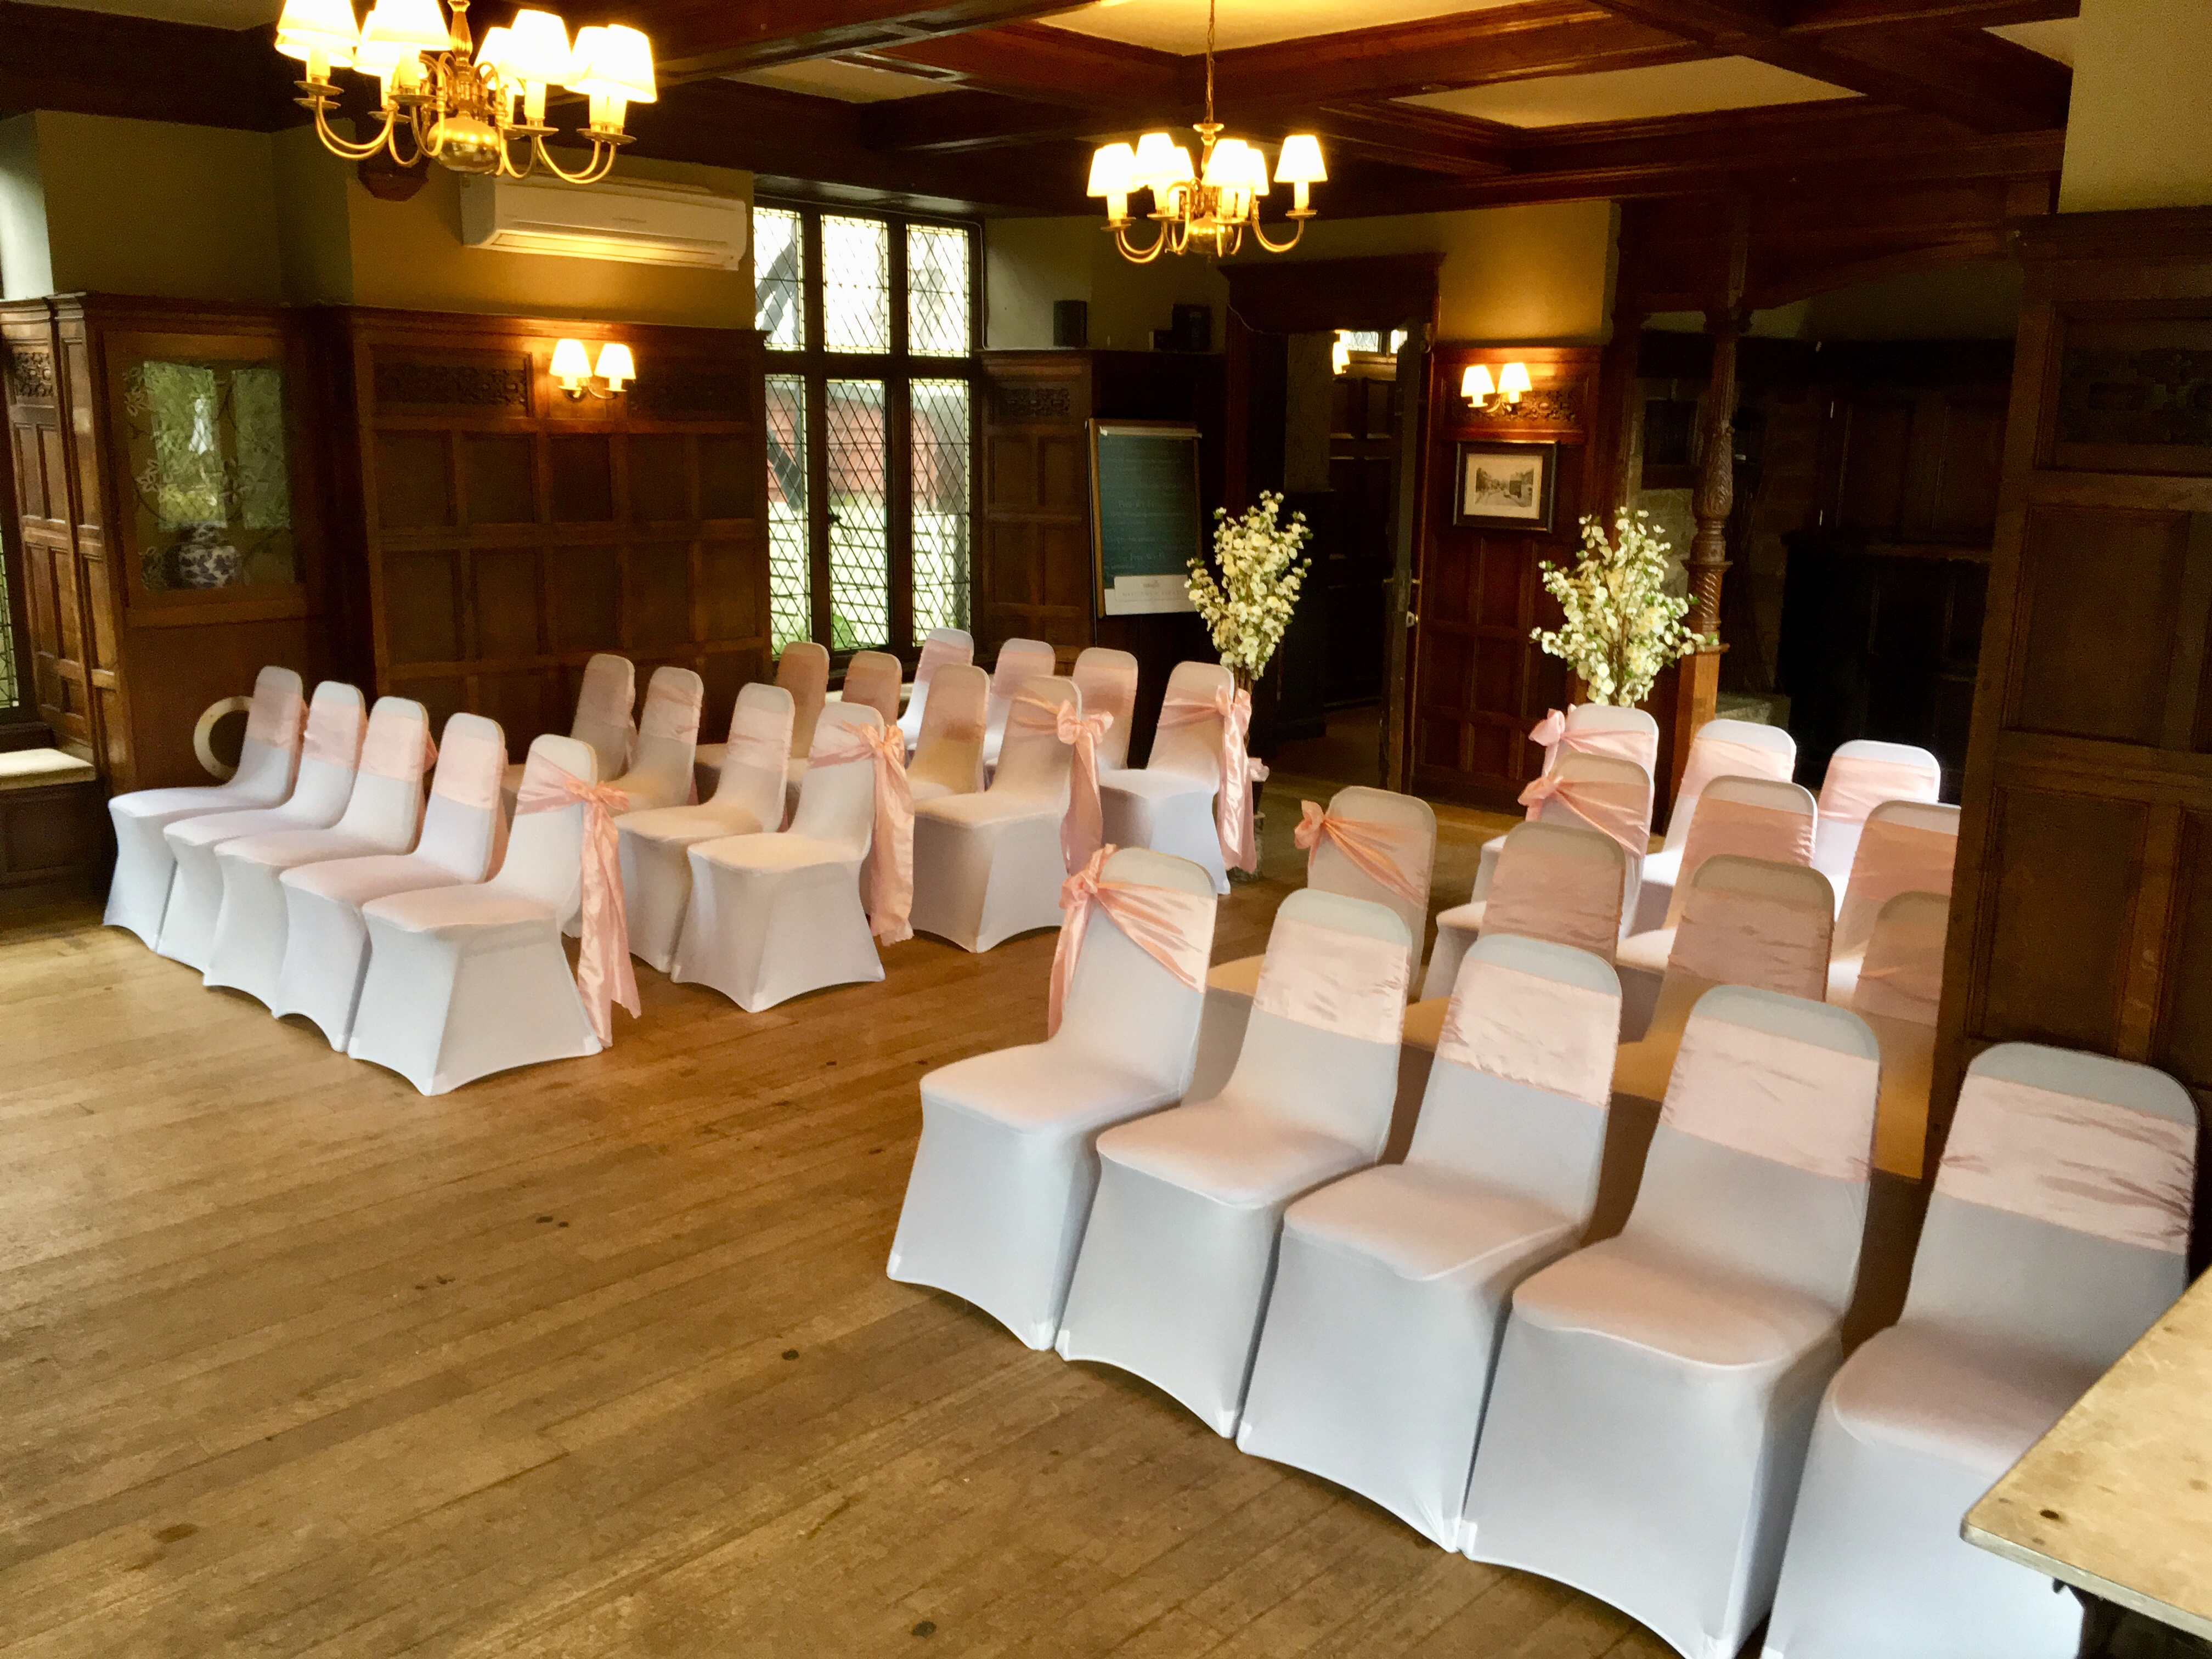 wedding chair covers east midlands quantum wheelchair gallery weddings events rothley court wilberforce room